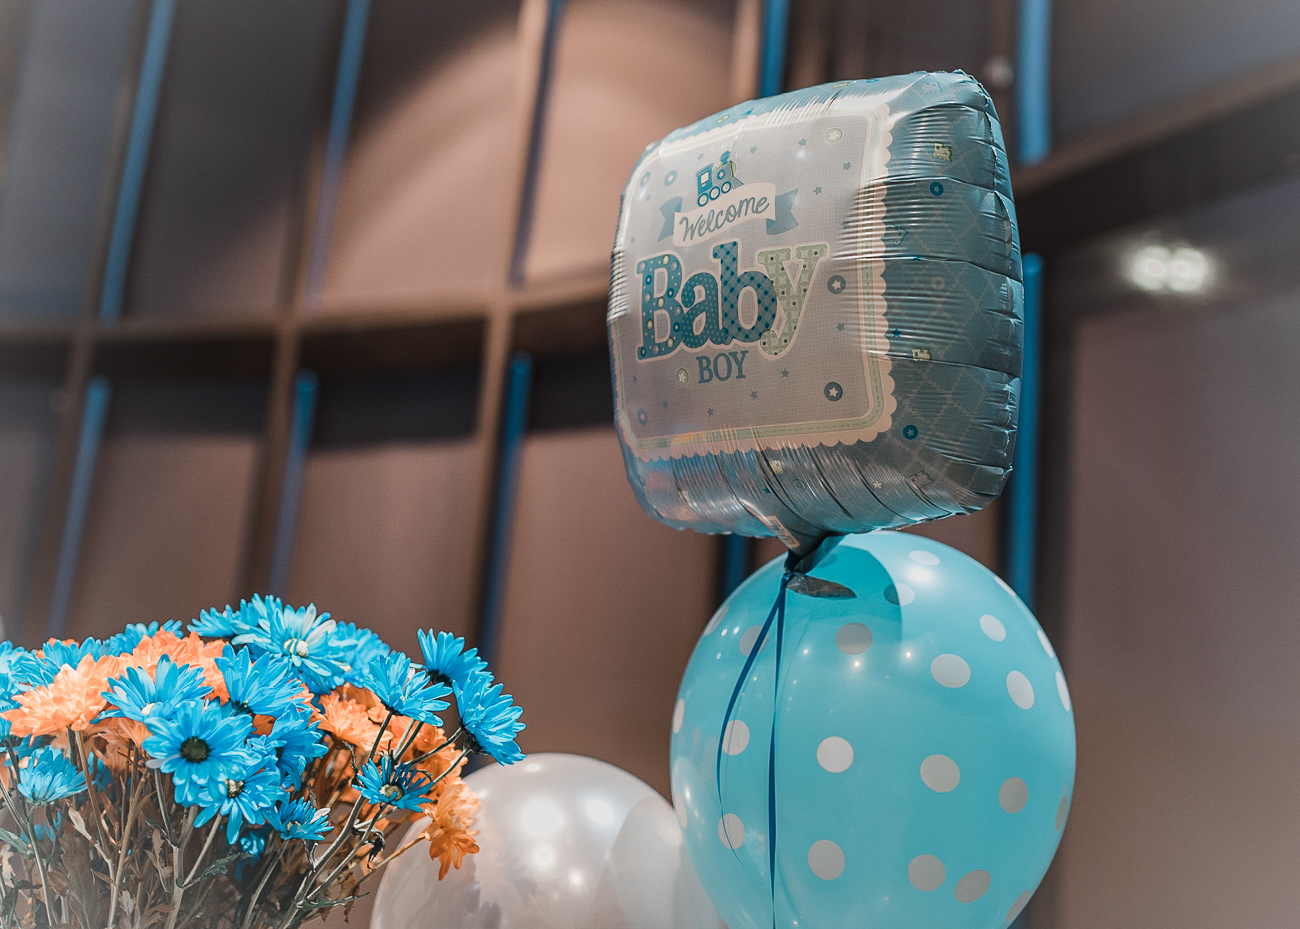 North York-and-Toronto-baby-shower-images-for-baby-boy(34).jpg